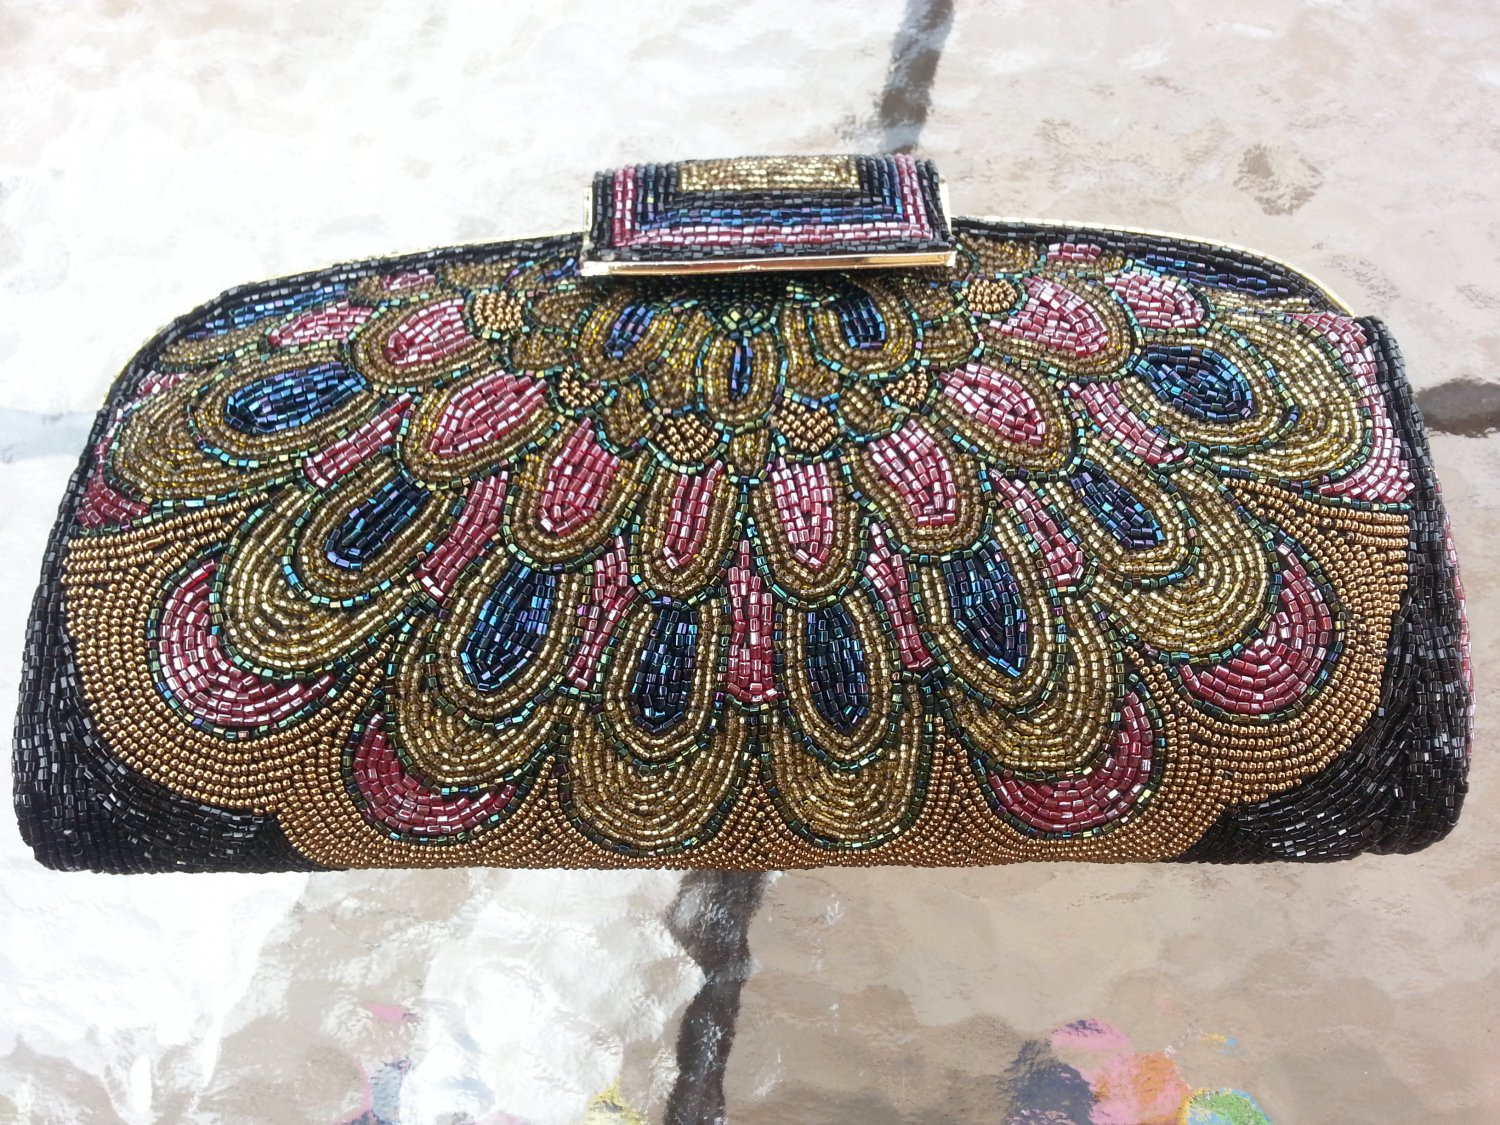 VINTAGE SCALLOPED BEADED DESIGN EVENING PURSE by JEROME'S of HONG KONG - VERY ROOMY!